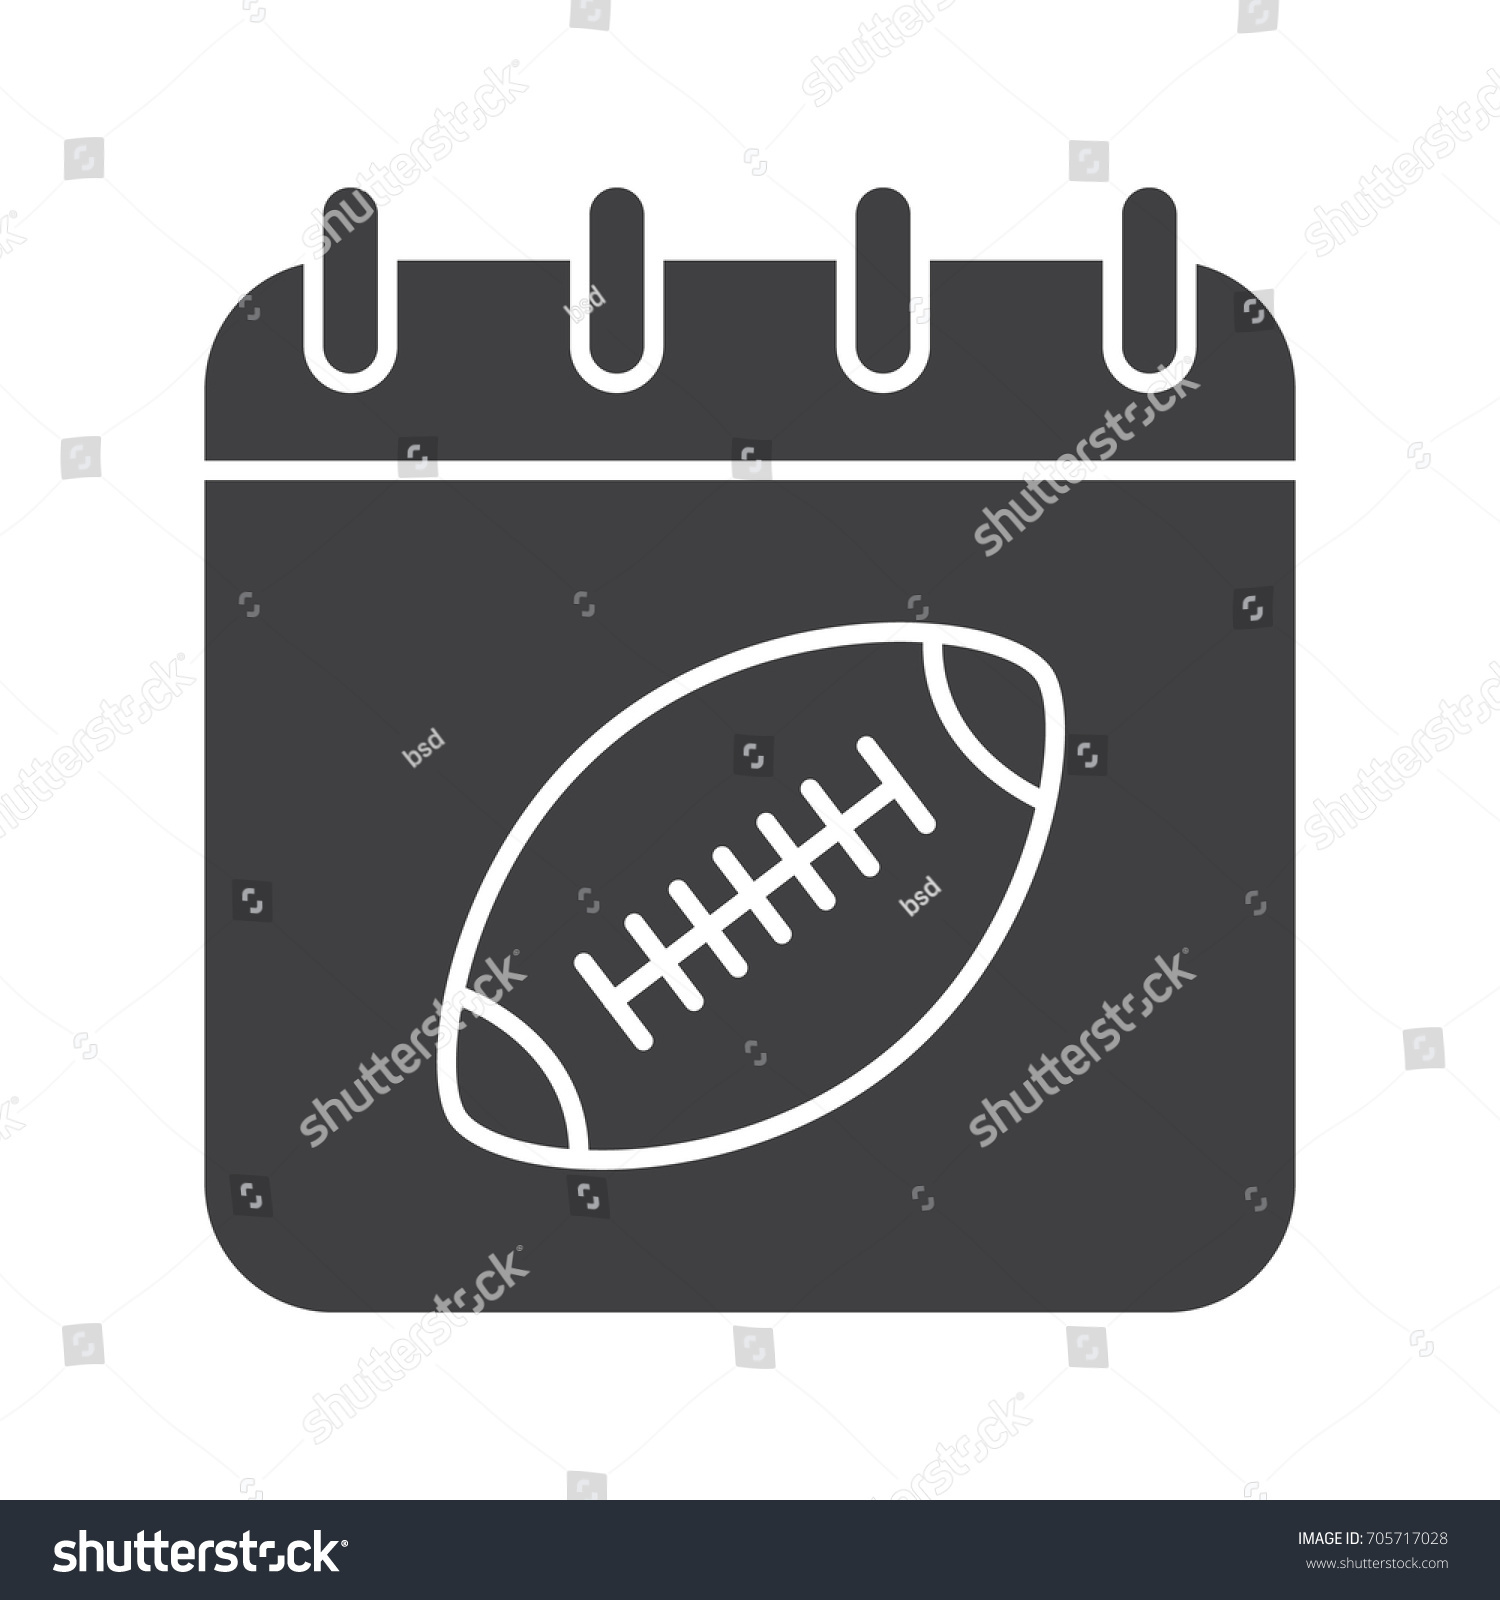 Super bowl date glyph icon silhouette stock illustration 705717028 super bowl date glyph icon silhouette symbol calendar page with american football ball biocorpaavc